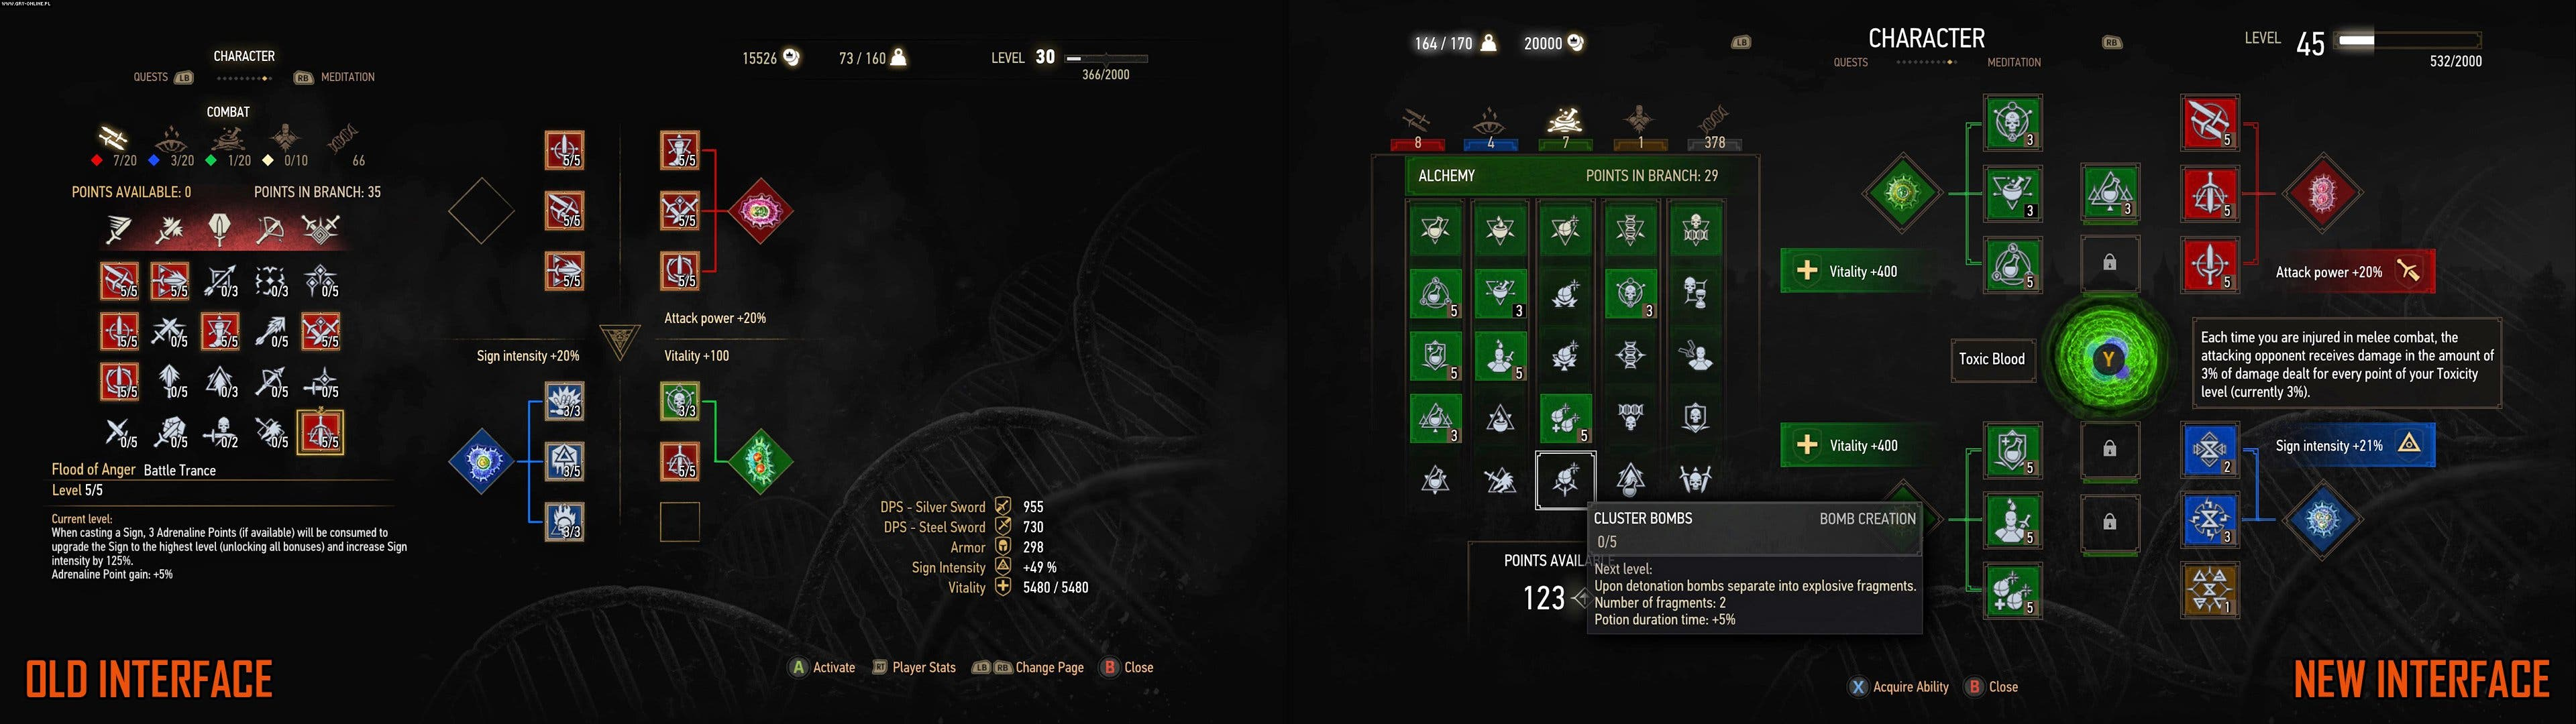 the-witcher-3-blood-and-wine-interface-1